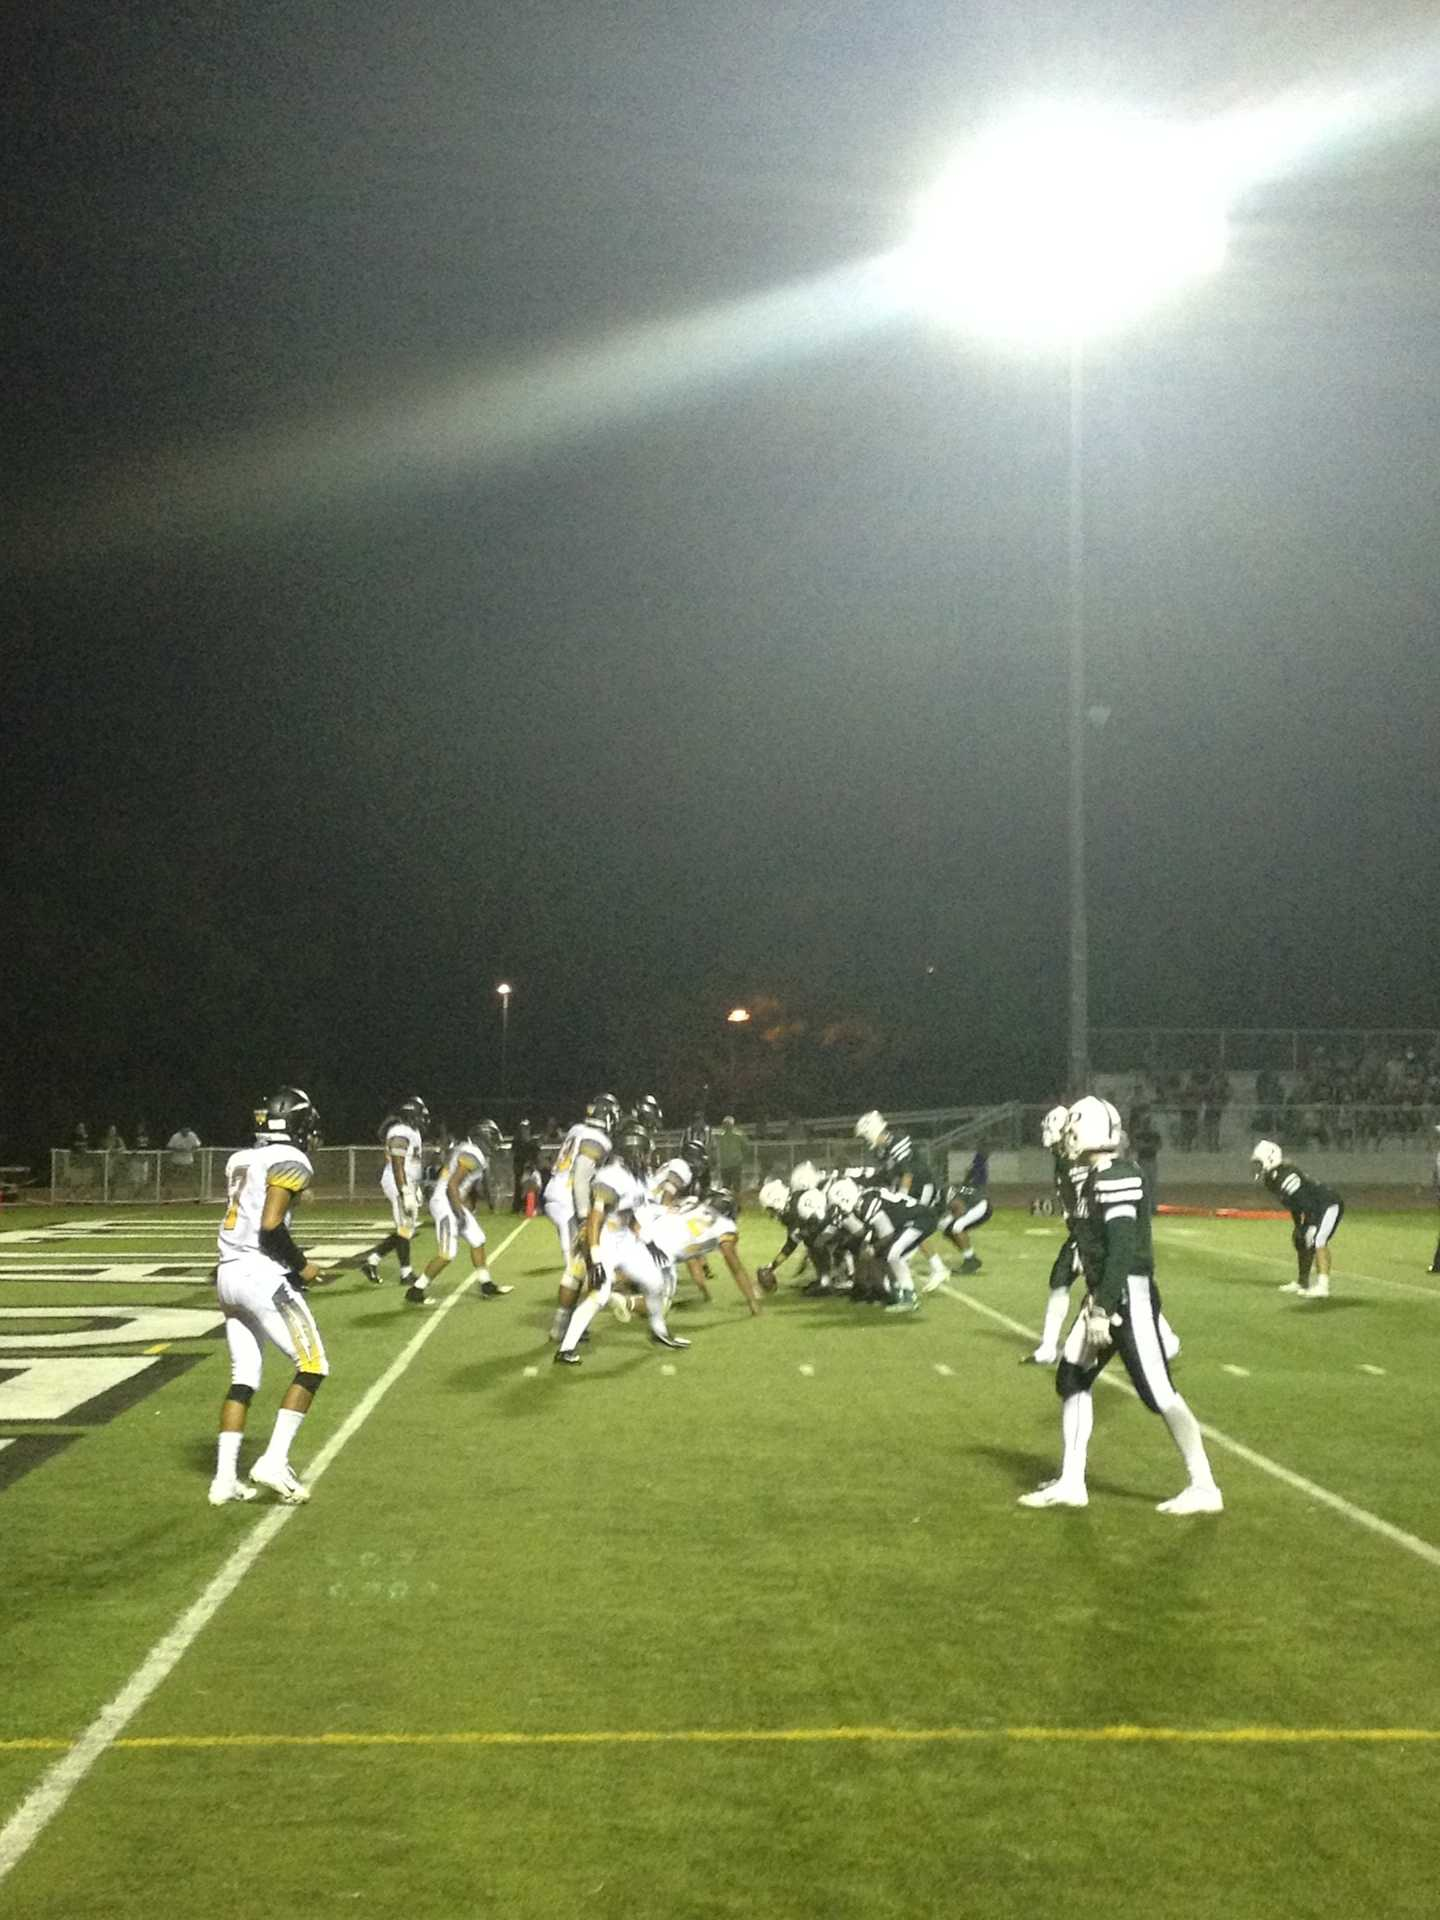 Paly lines up for a two-point conversion late in the fourth quarter. The Vikings failed to gain the two points and lost by one point against the Wilcox Chargers.